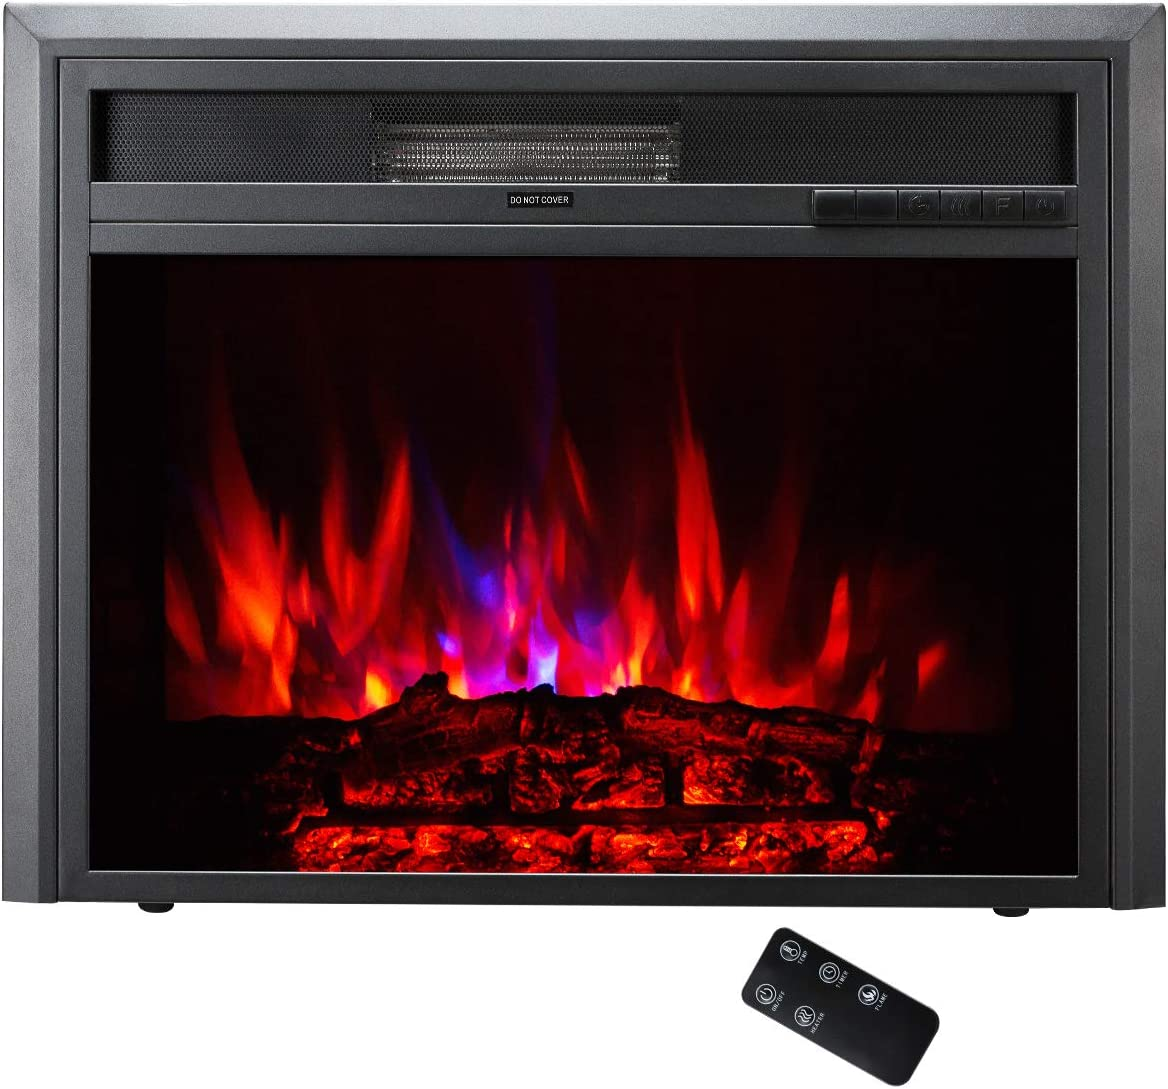 TAGI 23'' Embedded Electric Fireplace Insert, Recessed Electric Stove Heater with Remote Control